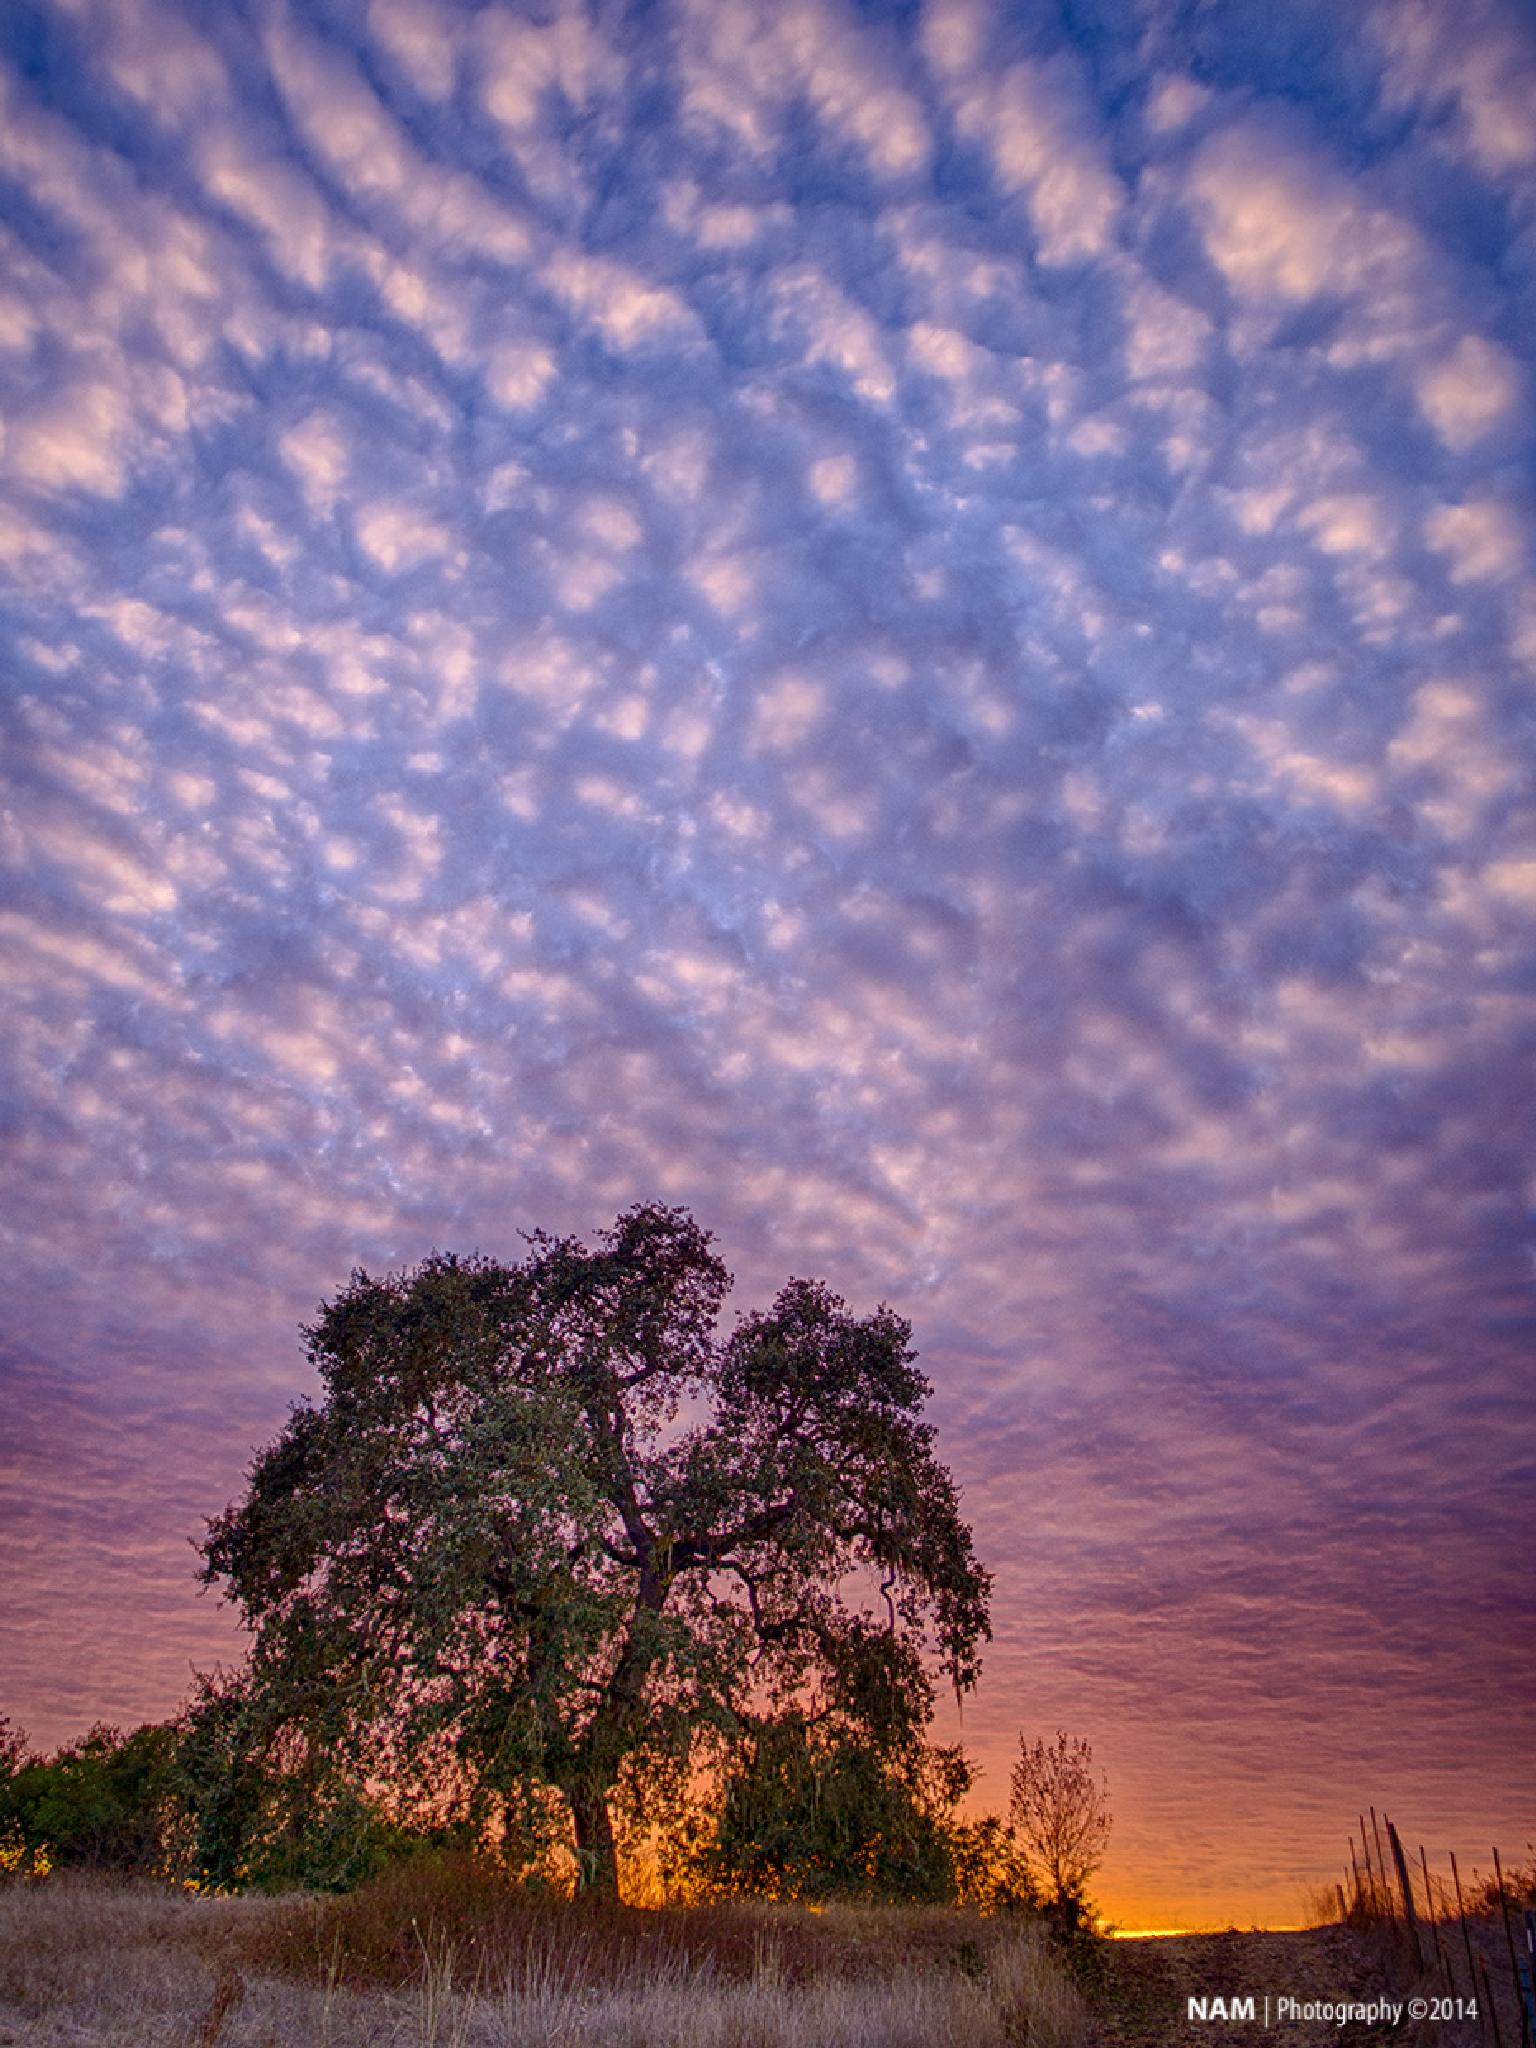 Puffy Clouds by nam.ing